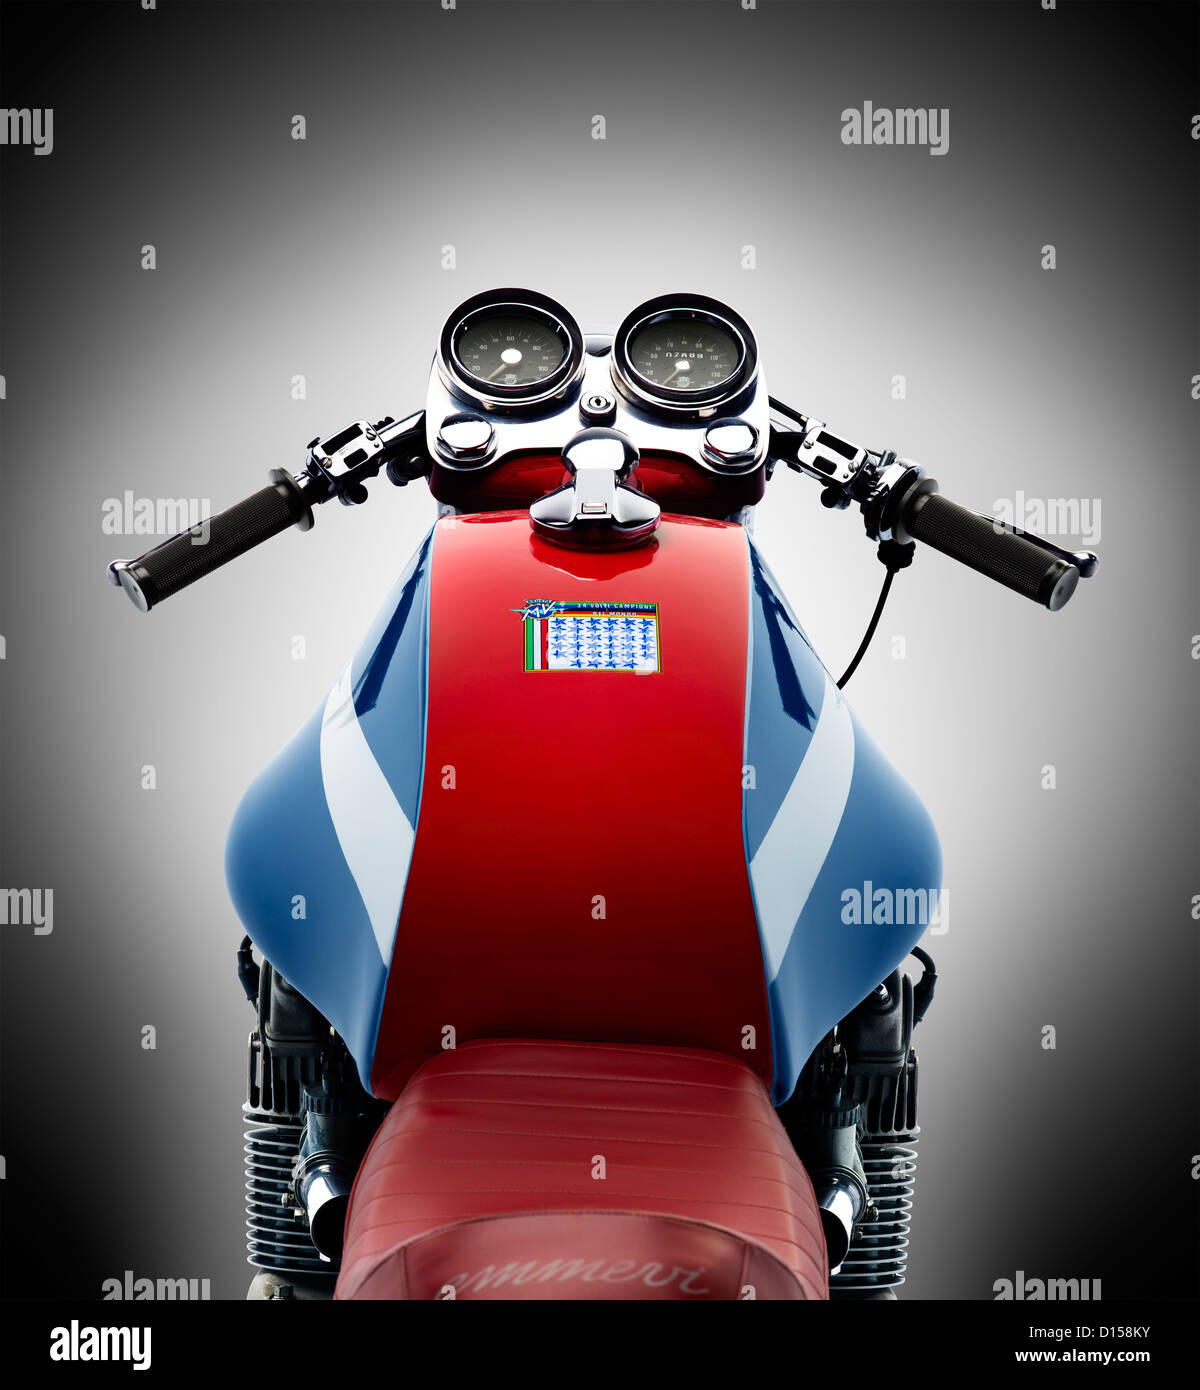 Moto MV Agusta isolated over white background Banque D'Images